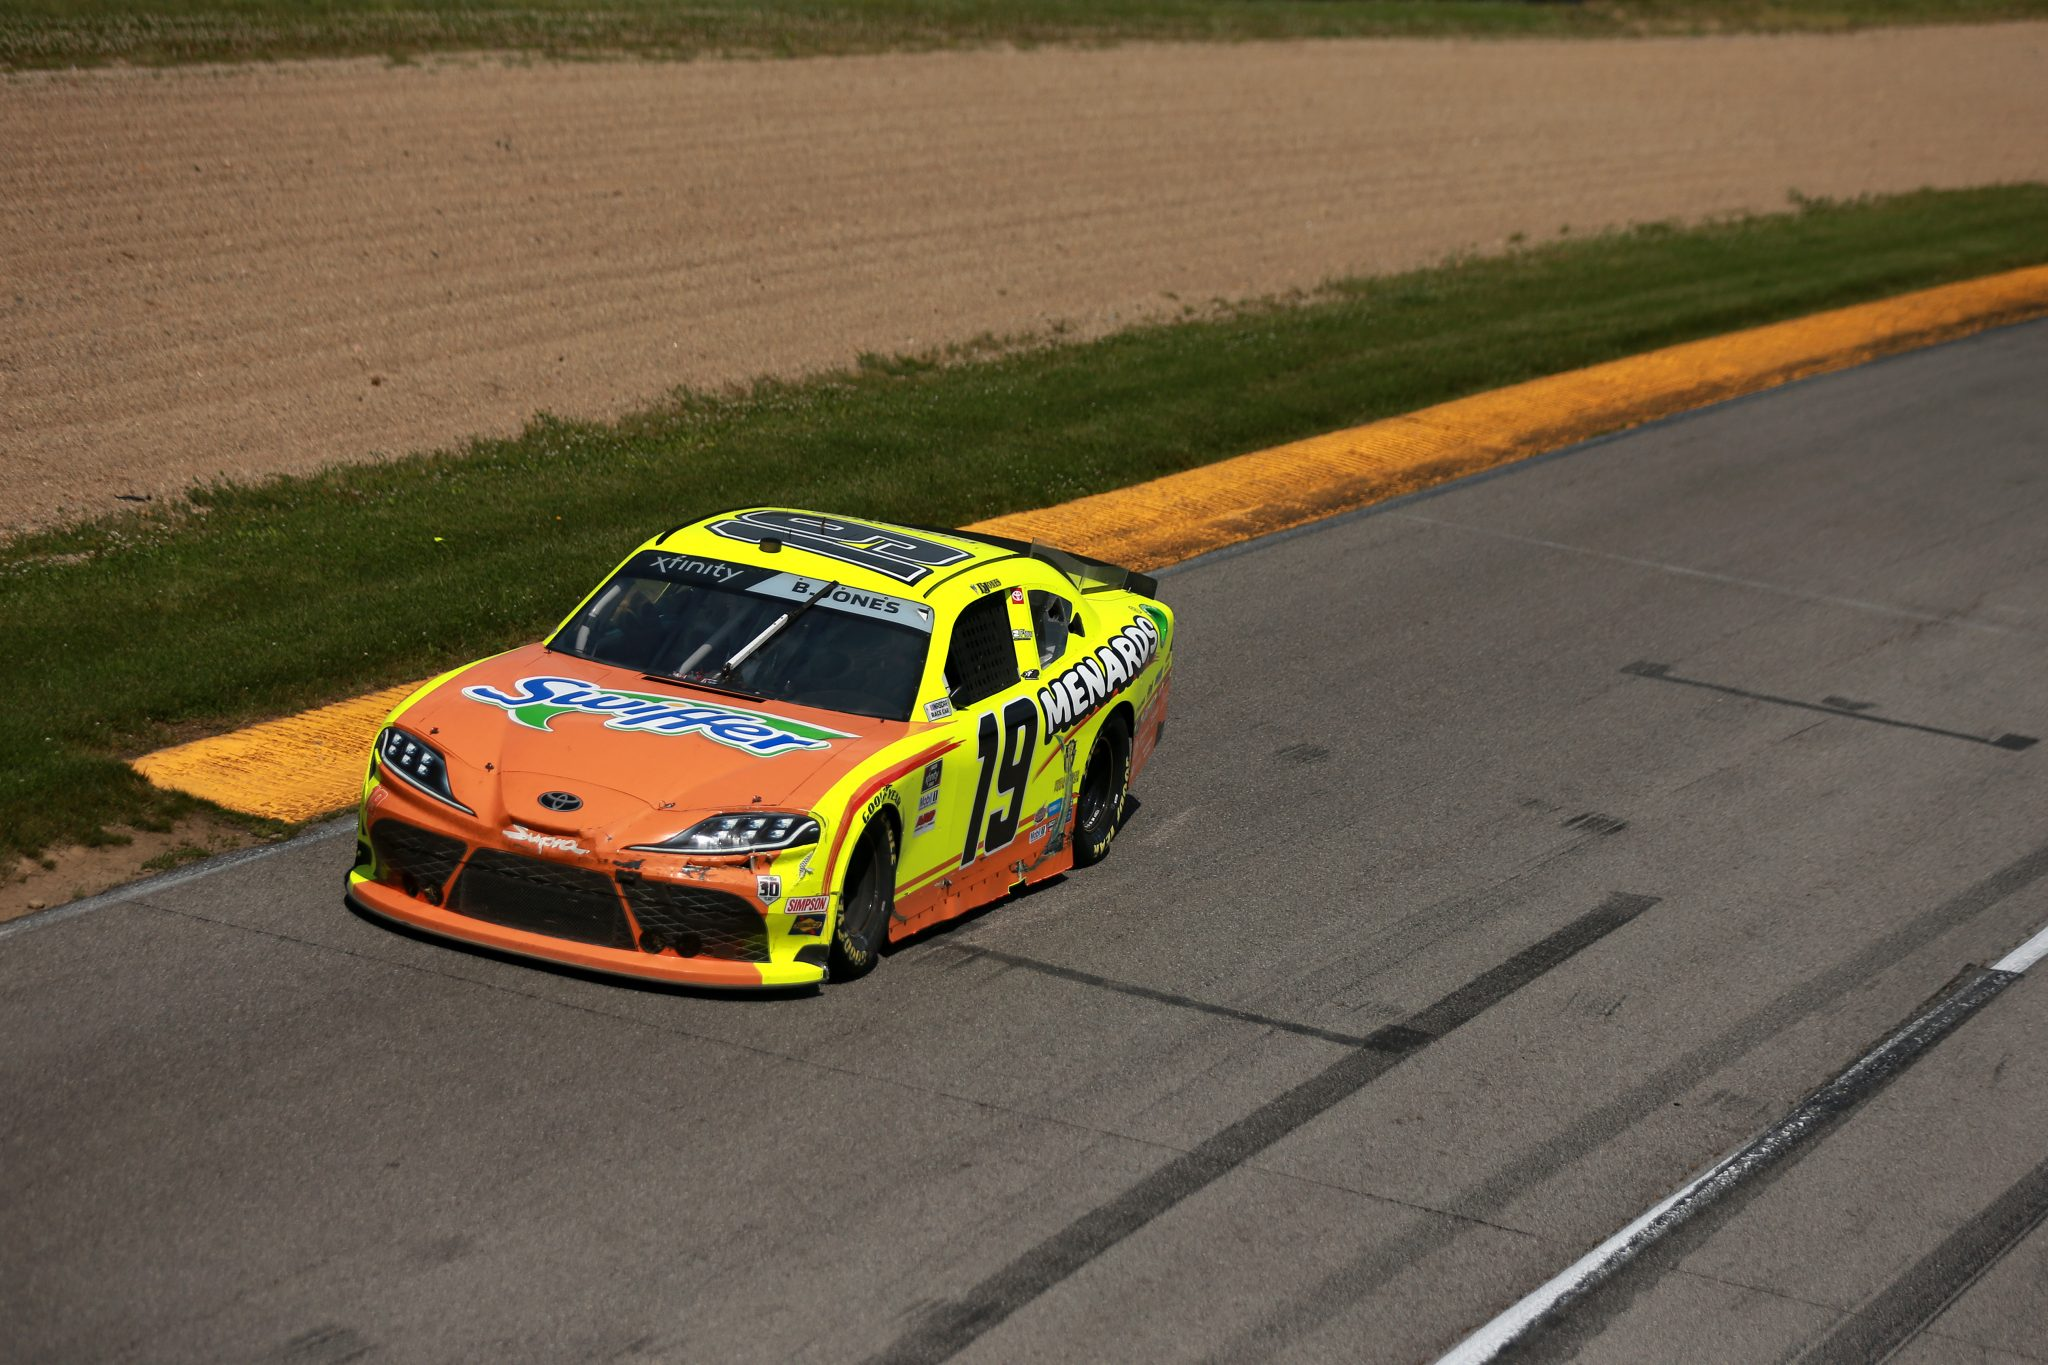 LEXINGTON, OHIO - JUNE 05: Brandon Jones, driver of the #19 Menards/Swiffer Toyota, drives during the NASCAR Xfinity Series B&L Transport 170 at Mid-Ohio Sports Car Course on June 05, 2021 in Lexington, Ohio. (Photo by Sean Gardner/Getty Images) | Getty Images